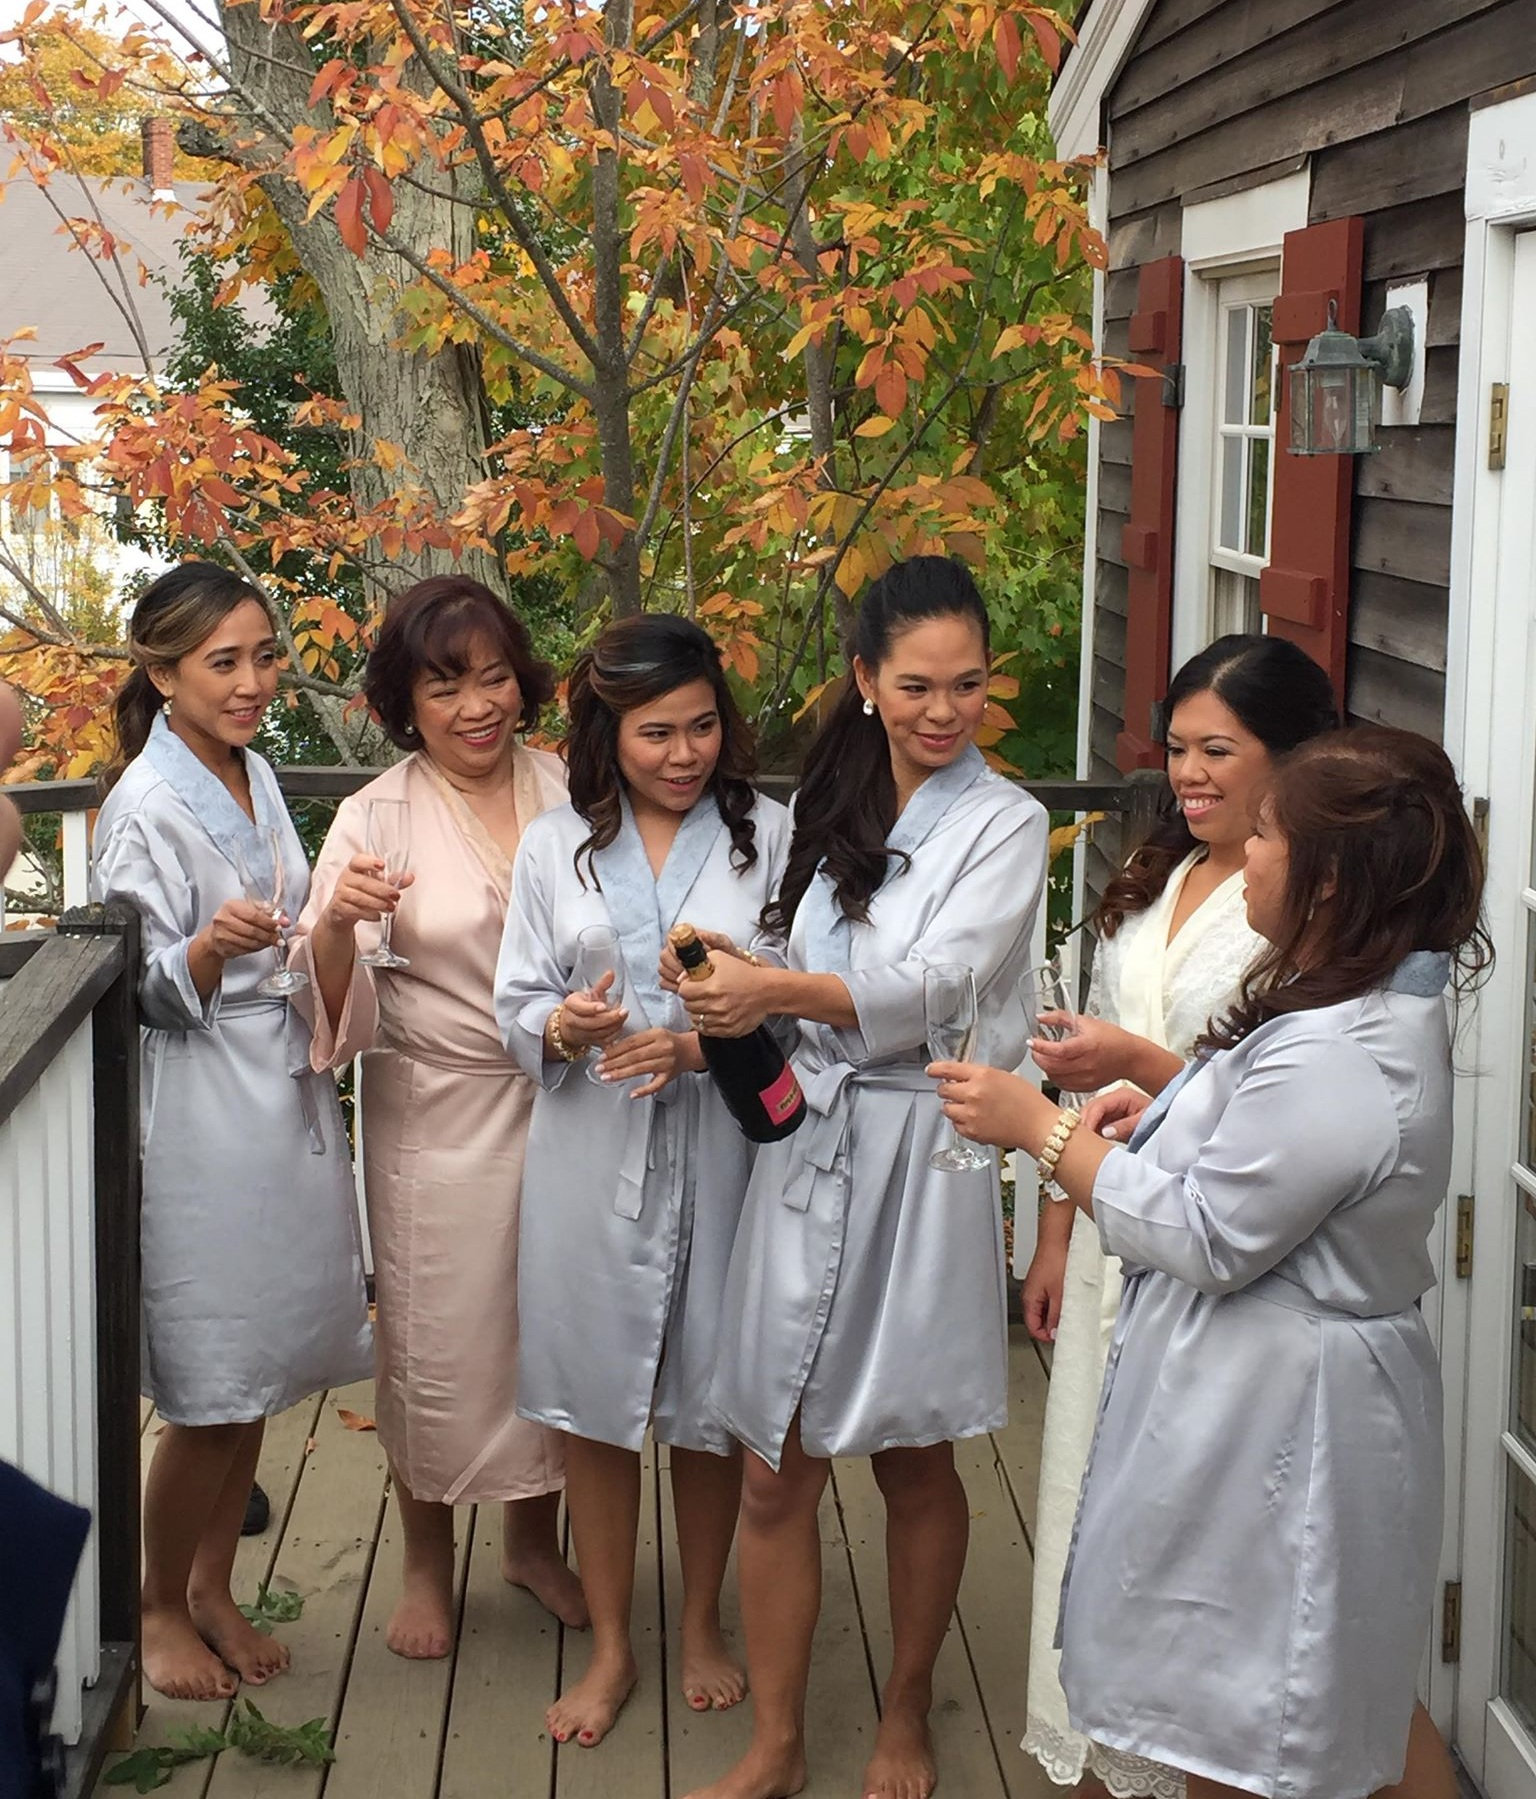 Fall bridal party popping champagne